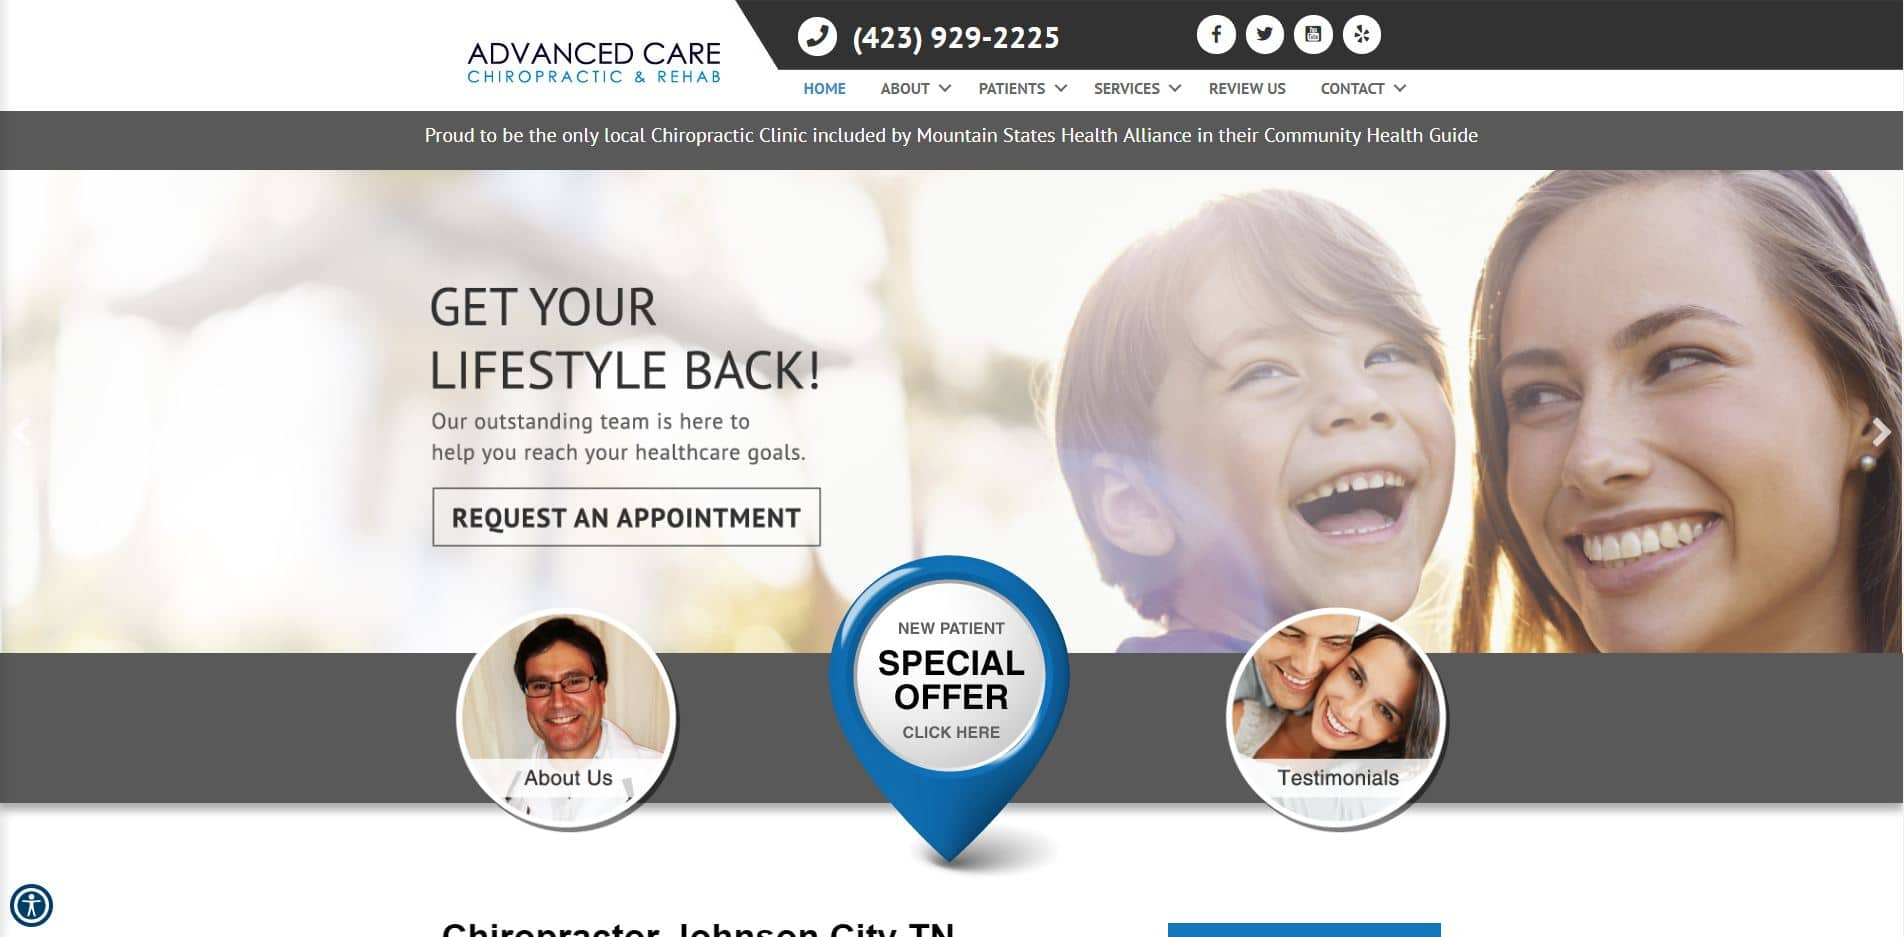 Chiropractor in Johnson City